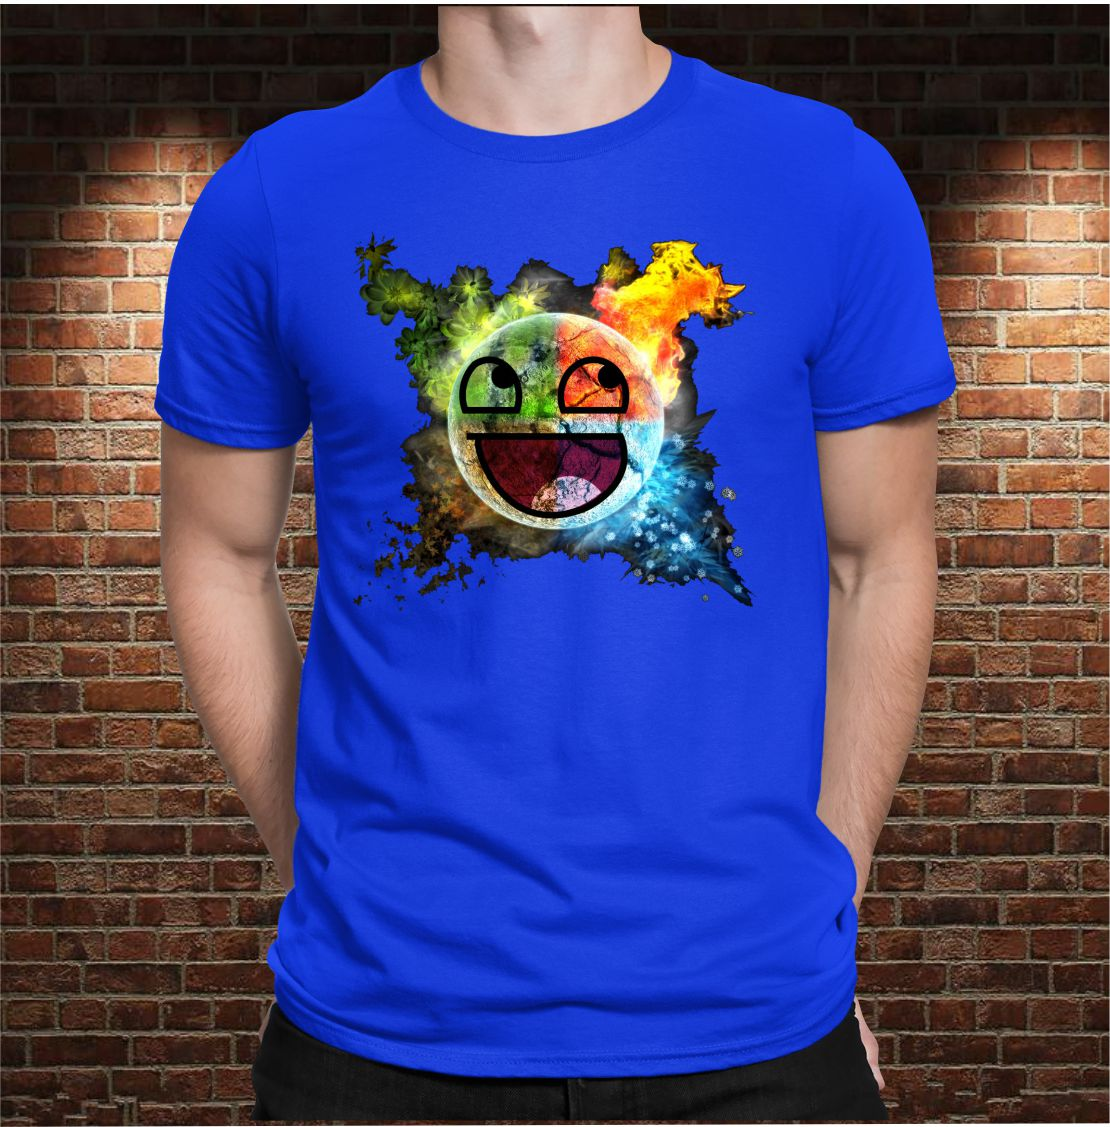 CAMISETA EMOTICONO COLOR